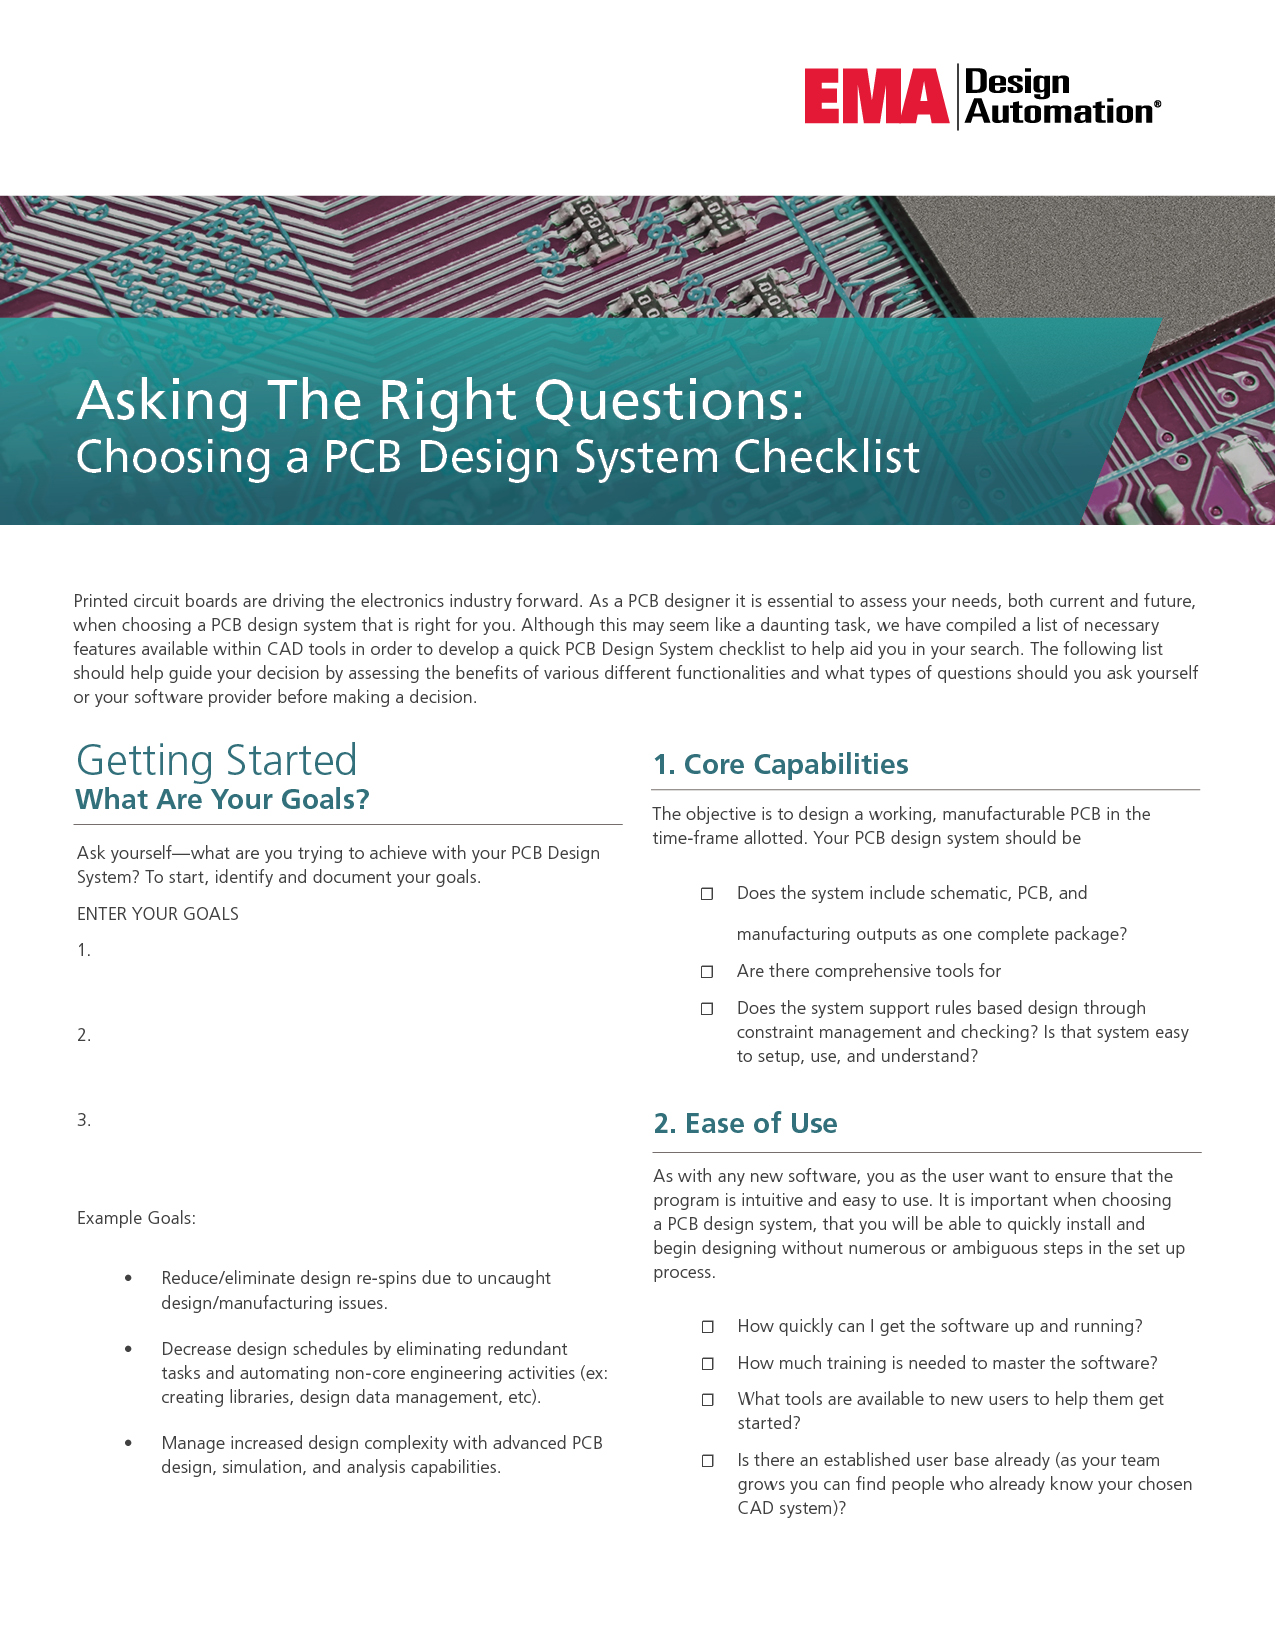 Asking The Right Questions Choosing A Pcb Design System Checklist Ema Design Automation